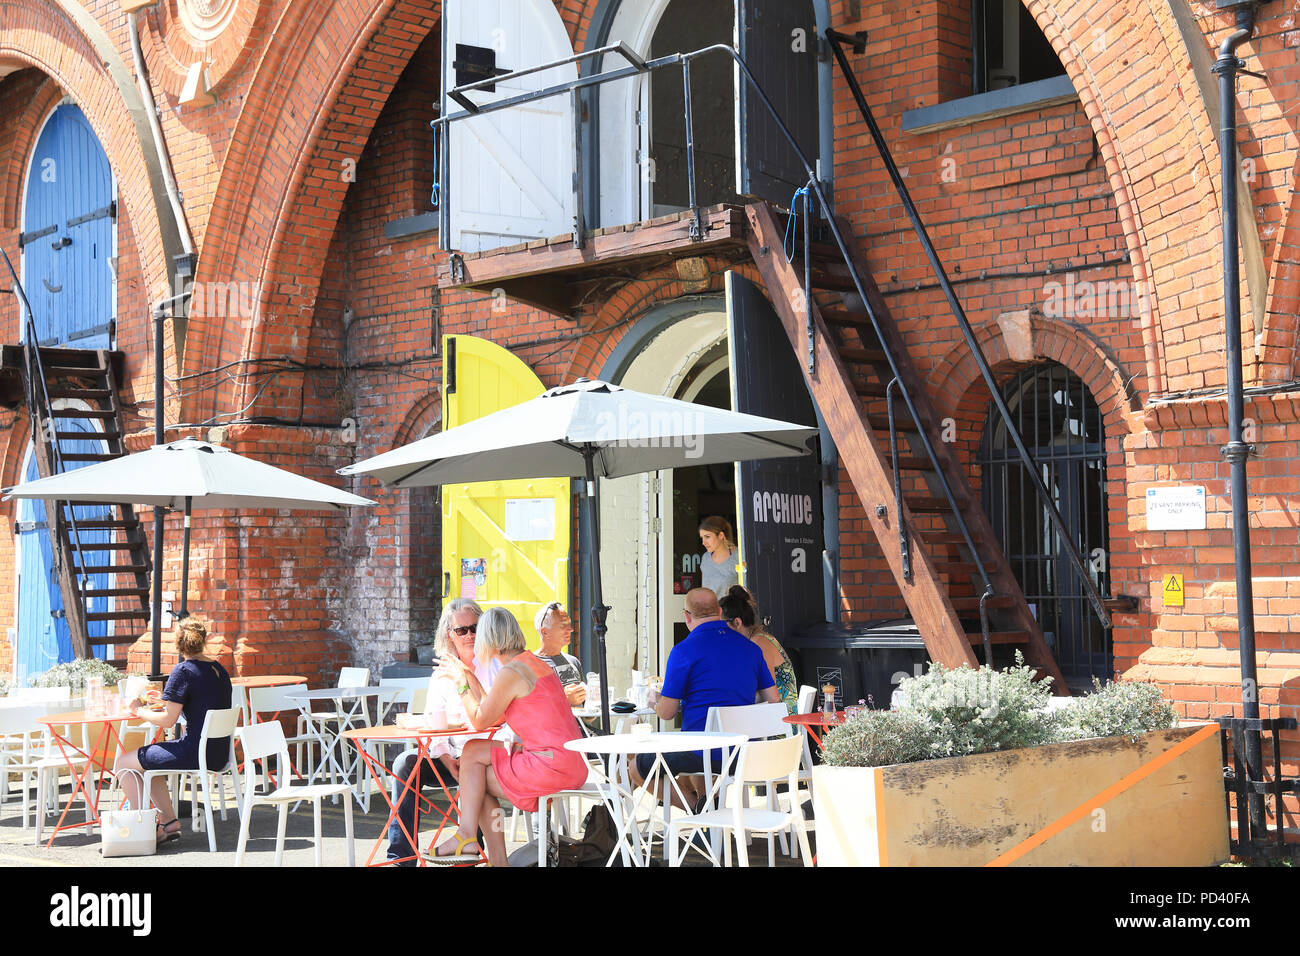 The Archive Homestore & Kitchen, a trendy lifestyle store and cafe, in a converted Victorain arch, in Ramsgate, on the Isle of Thanet, Kent, UK - Stock Image